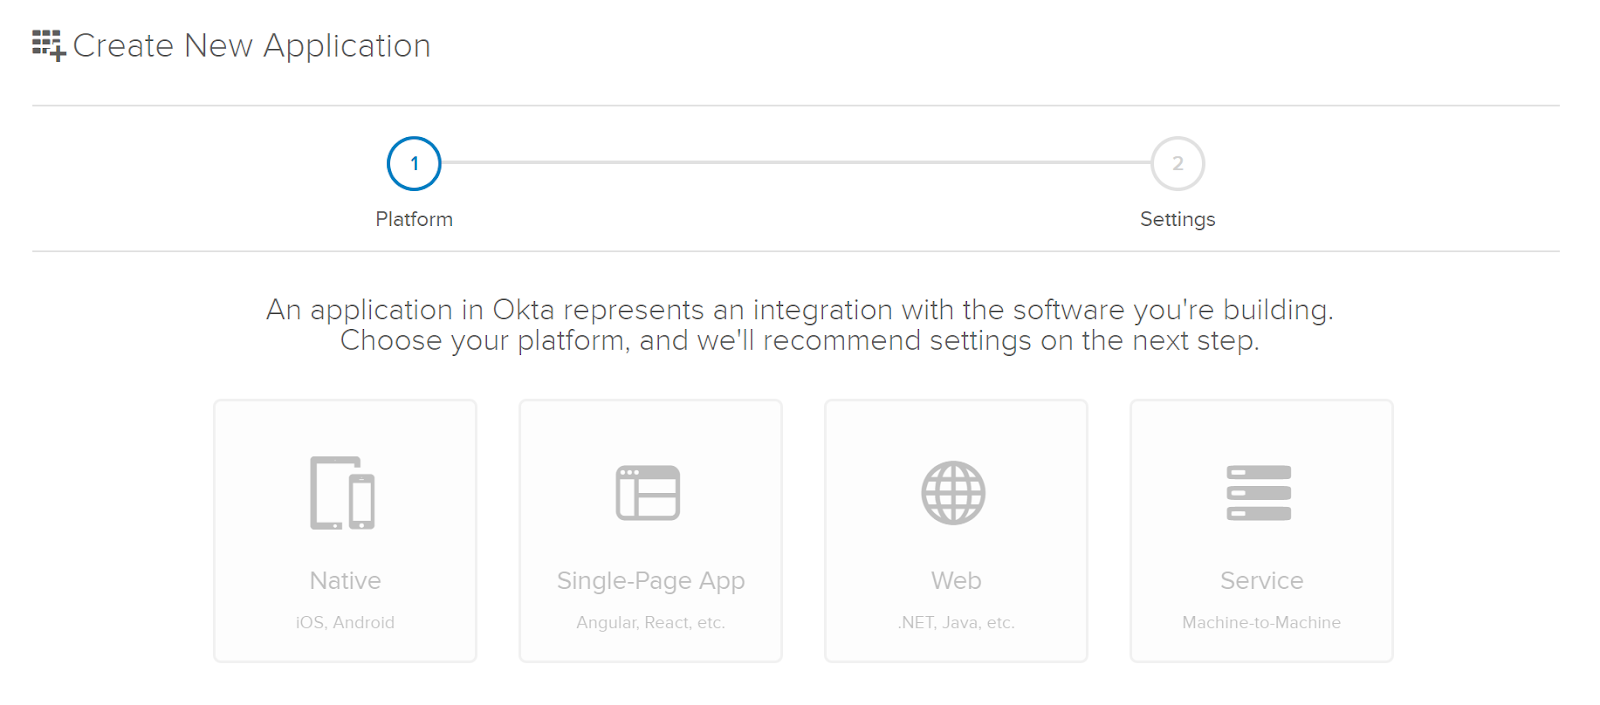 Select Web for Okta App